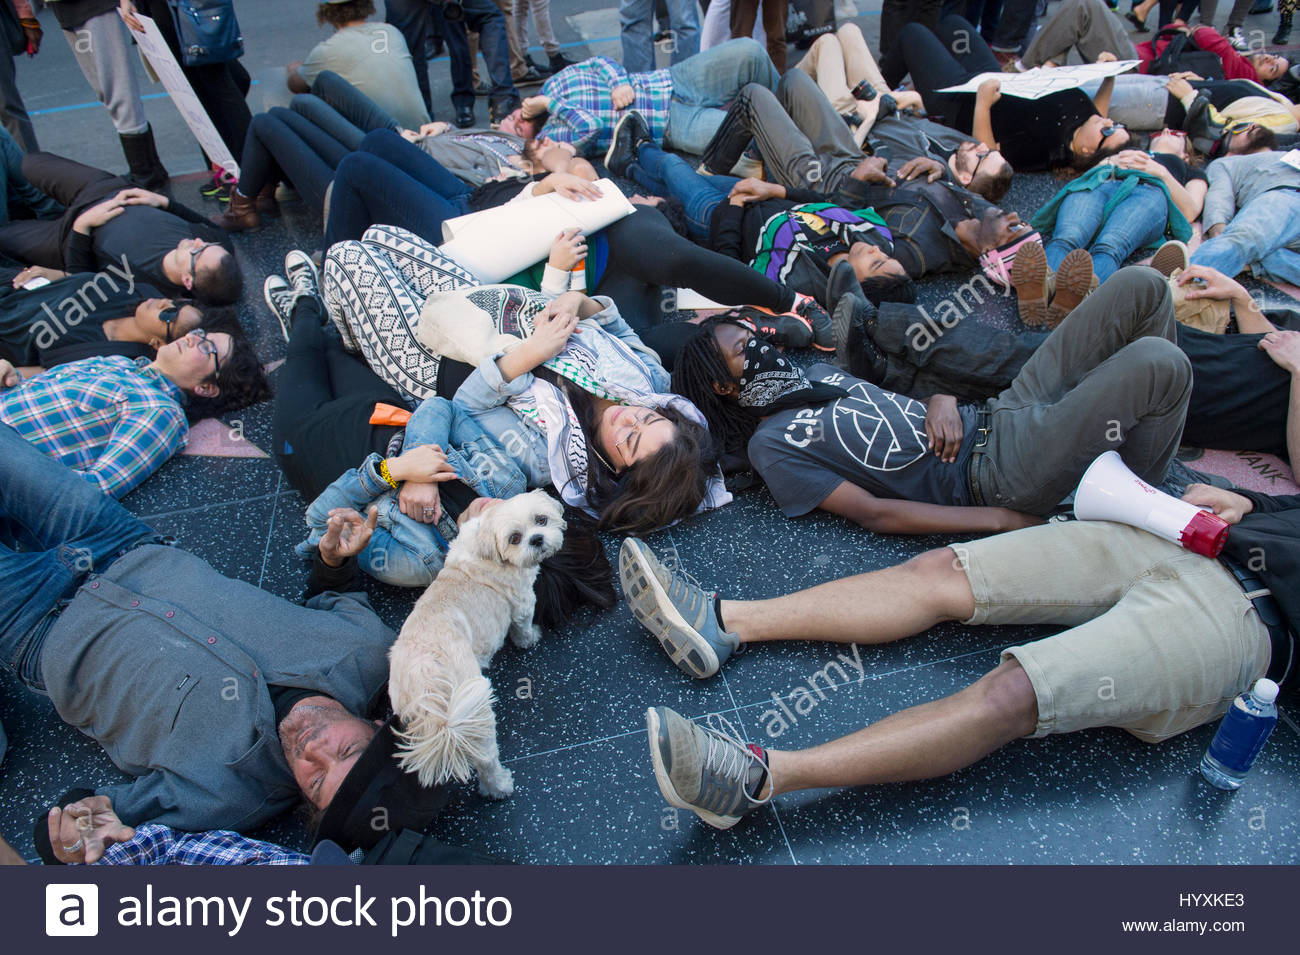 A protest against police brutality in Hollywood, California. - Stock Image